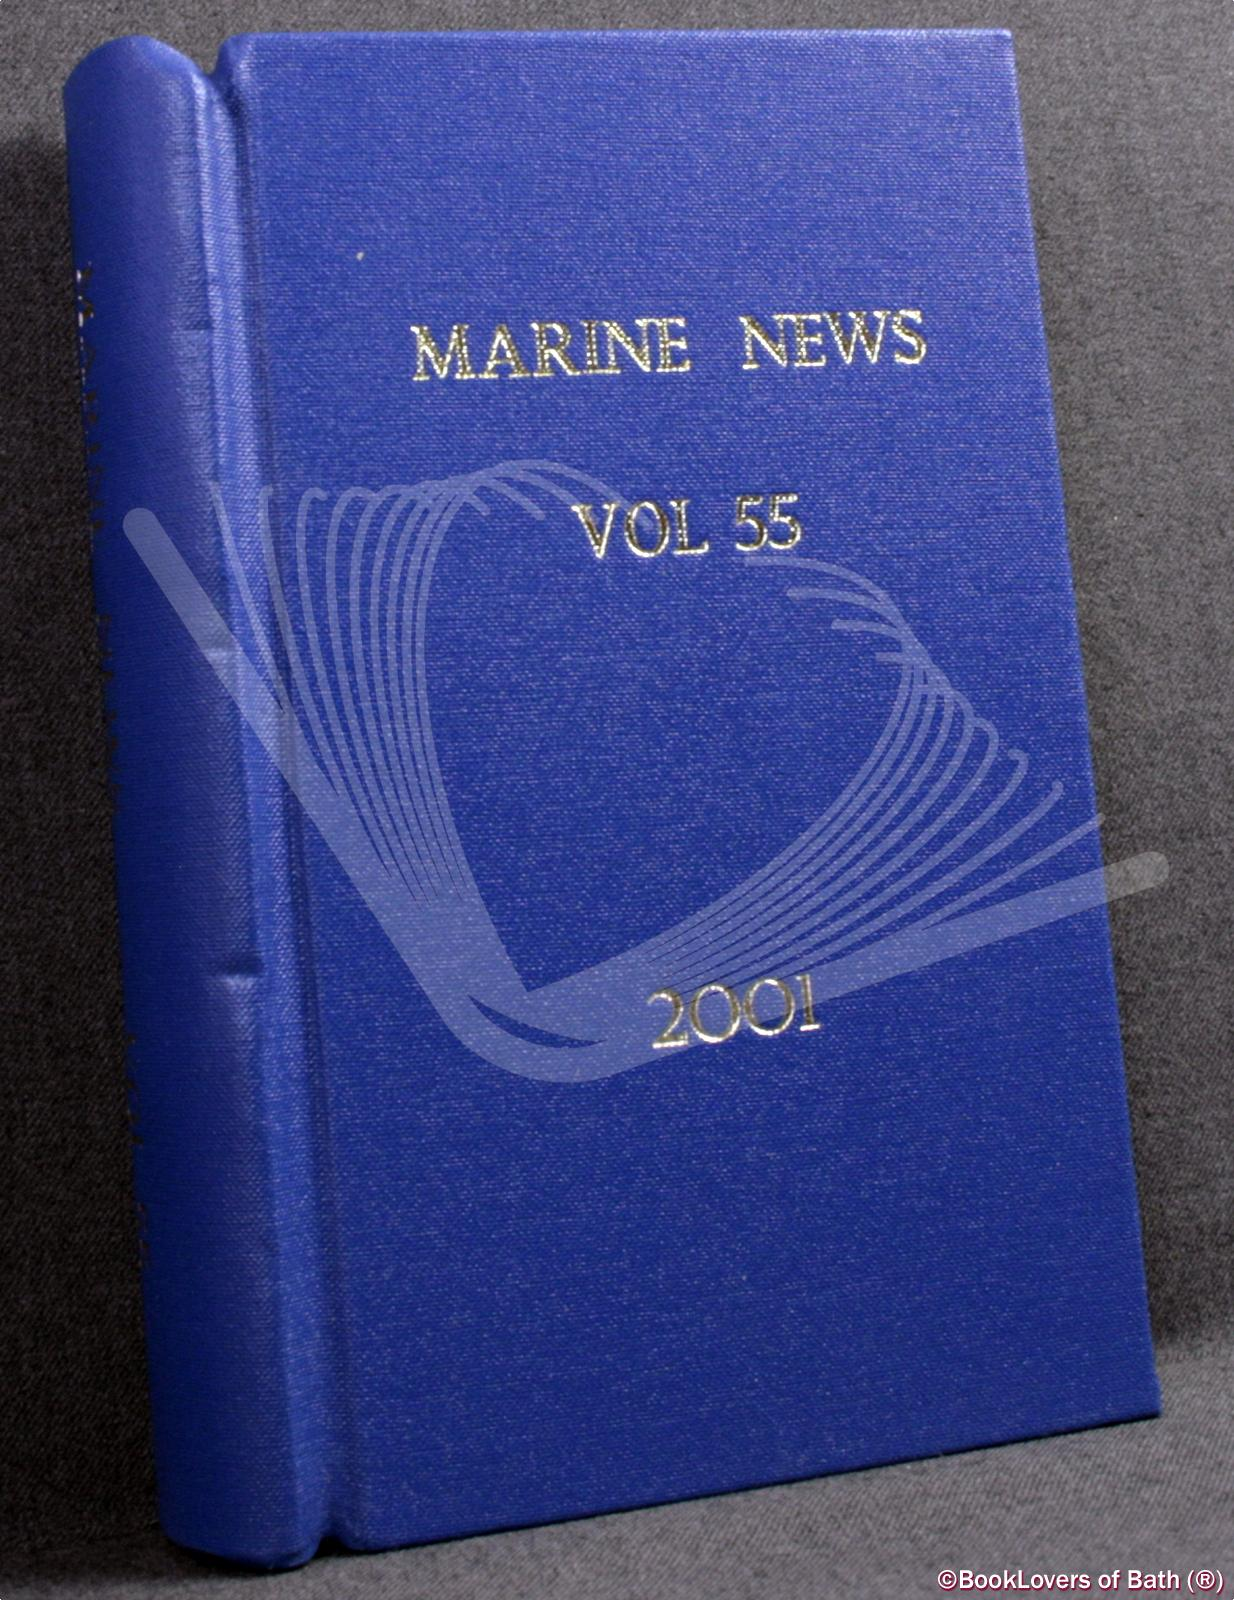 Marine News: Journal of the World Ship Society Volume 55 No. 1 January 2001 - Volume 55 No. 12 December 2001 - Edited By Kevin O'Donoghue, Harold Appleyard & Roy Fenton